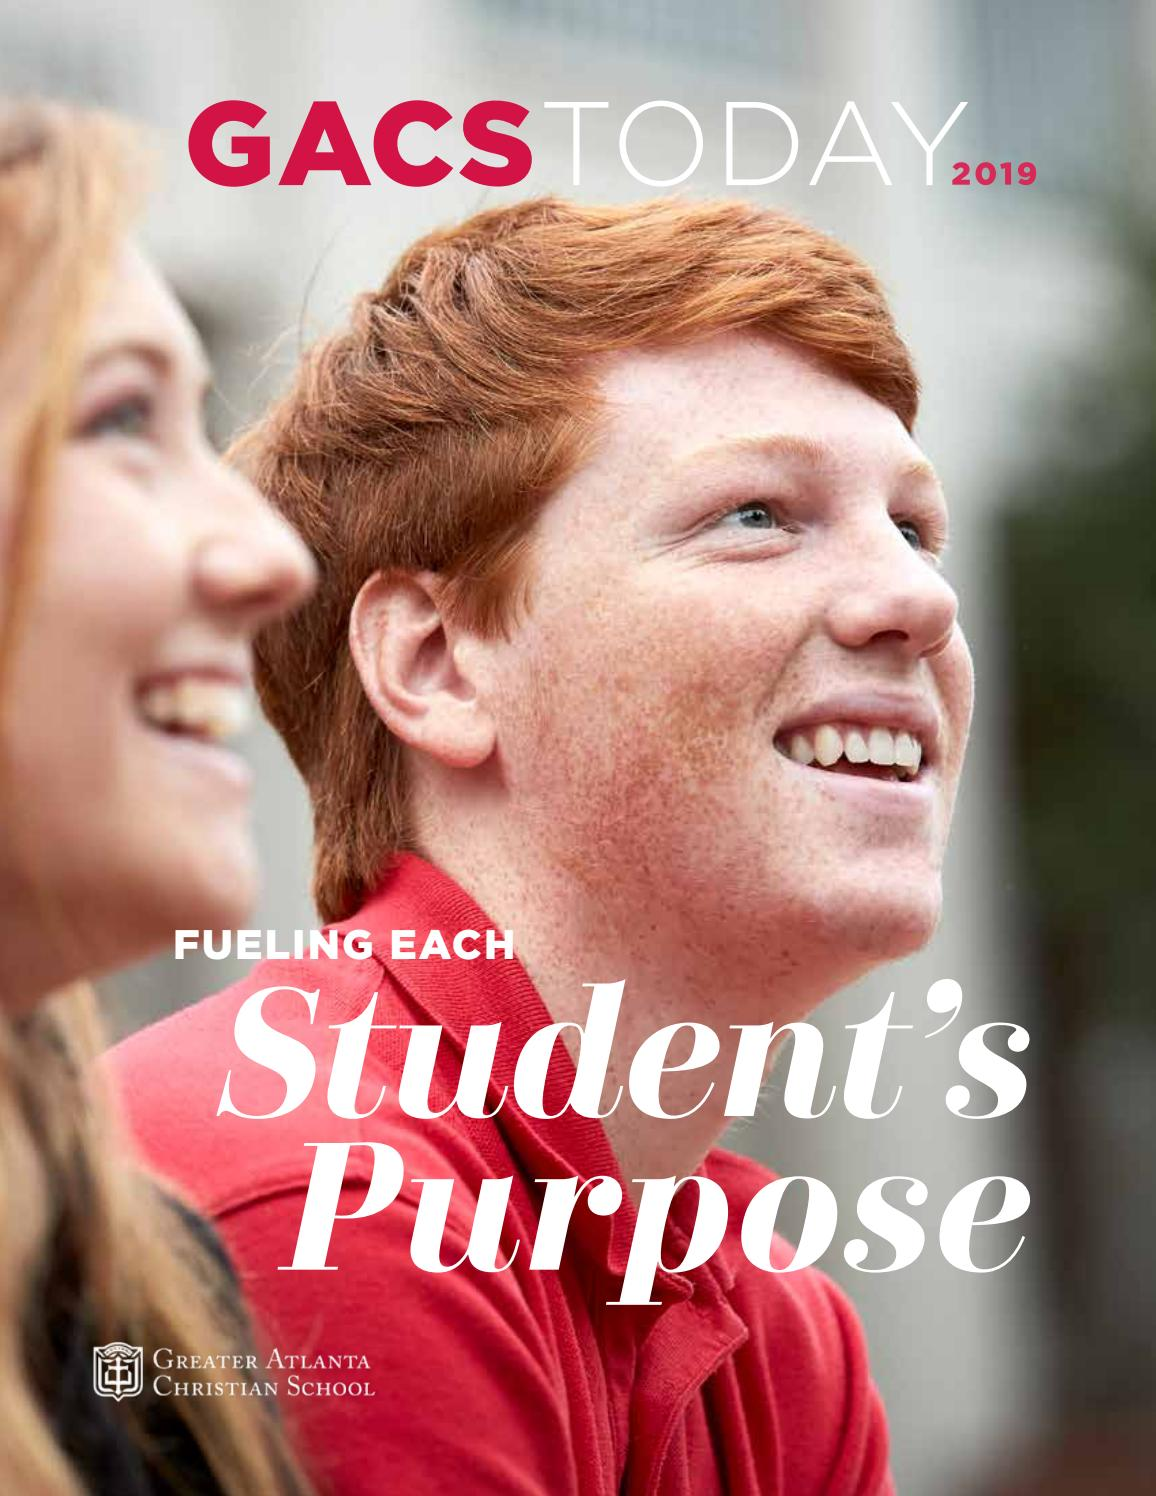 Gacs Today 2019 Magazine By Greater Atlanta Christian School Issuu The famous inspirational personality, marcus parks, celebrates his birthday on 19 january every year. greater atlanta christian school